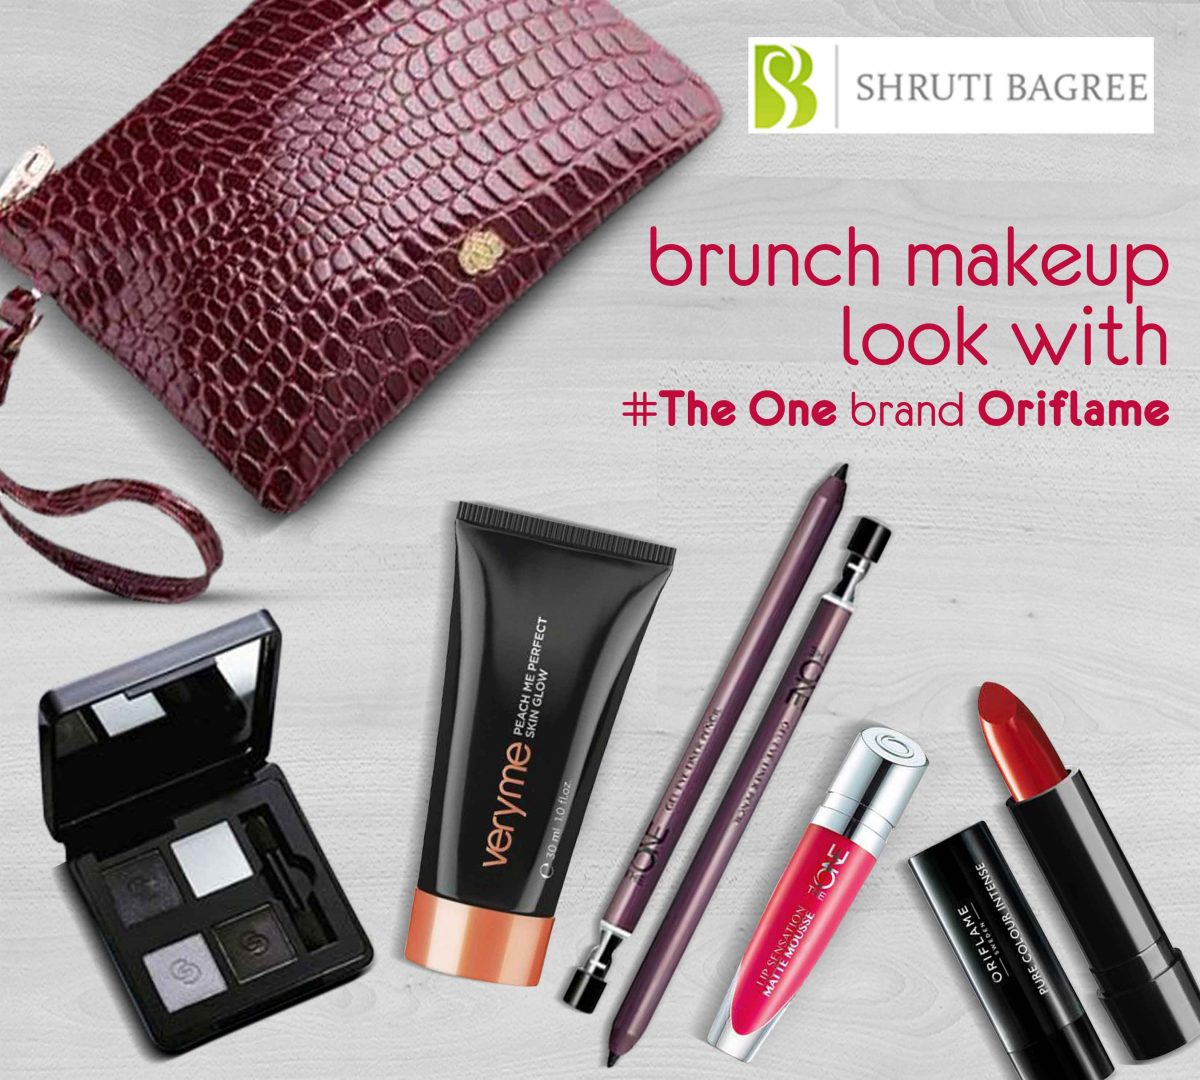 Get the Perfect Soft and Neutral Brunch MakeUp Look